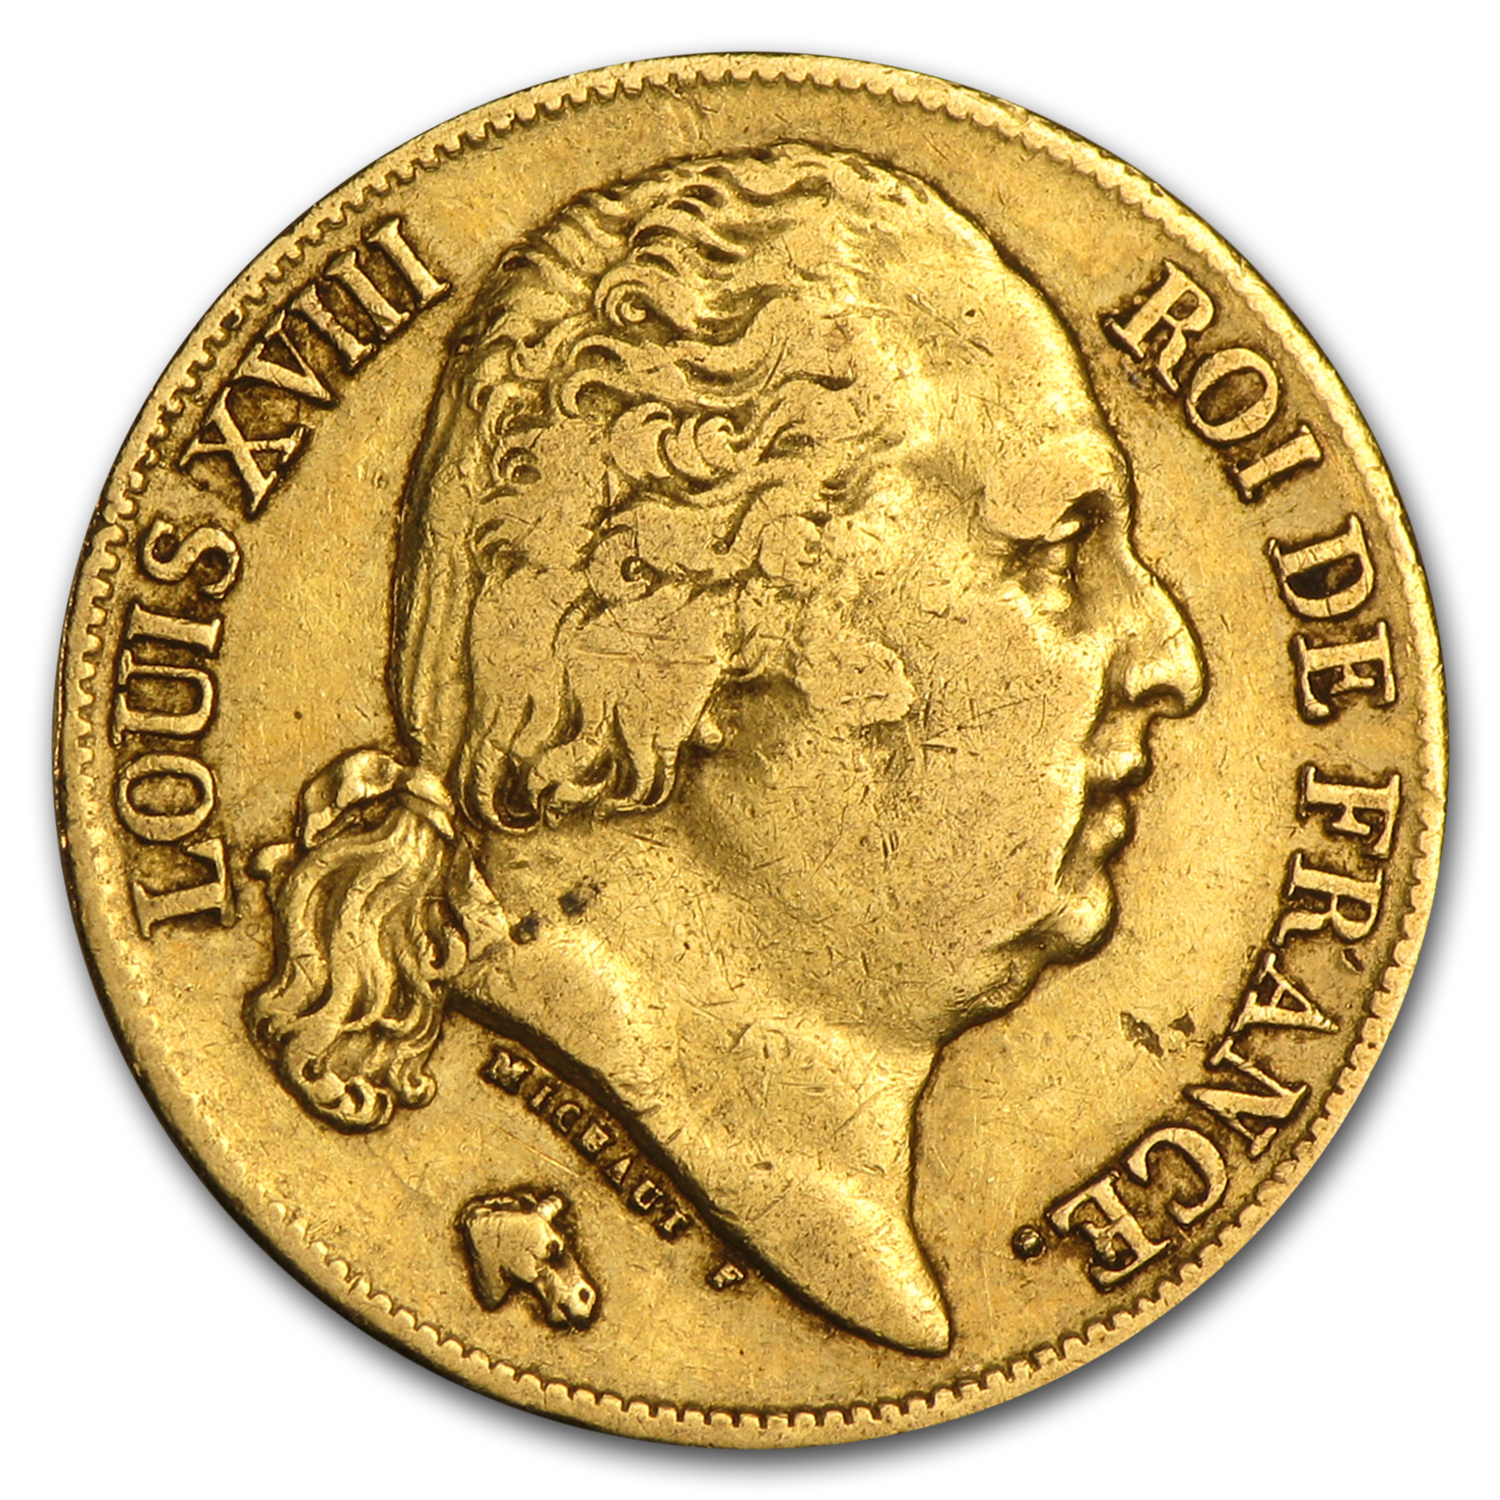 France Gold 20 France (1816-1824 Louis XVIII) (Circulated)